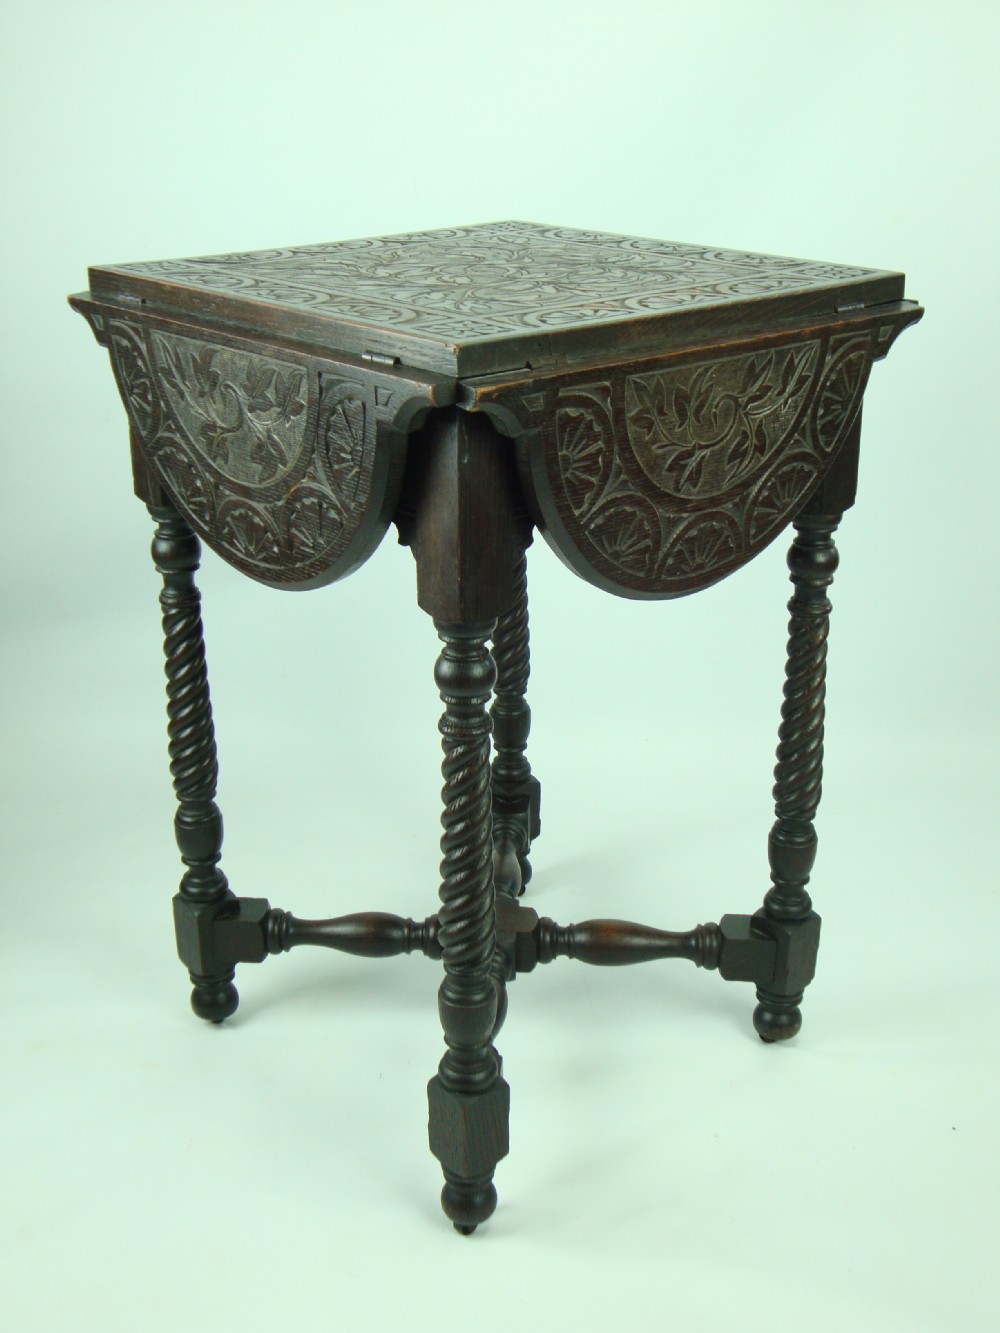 the small antique victorian carved gothic oak table has been added to